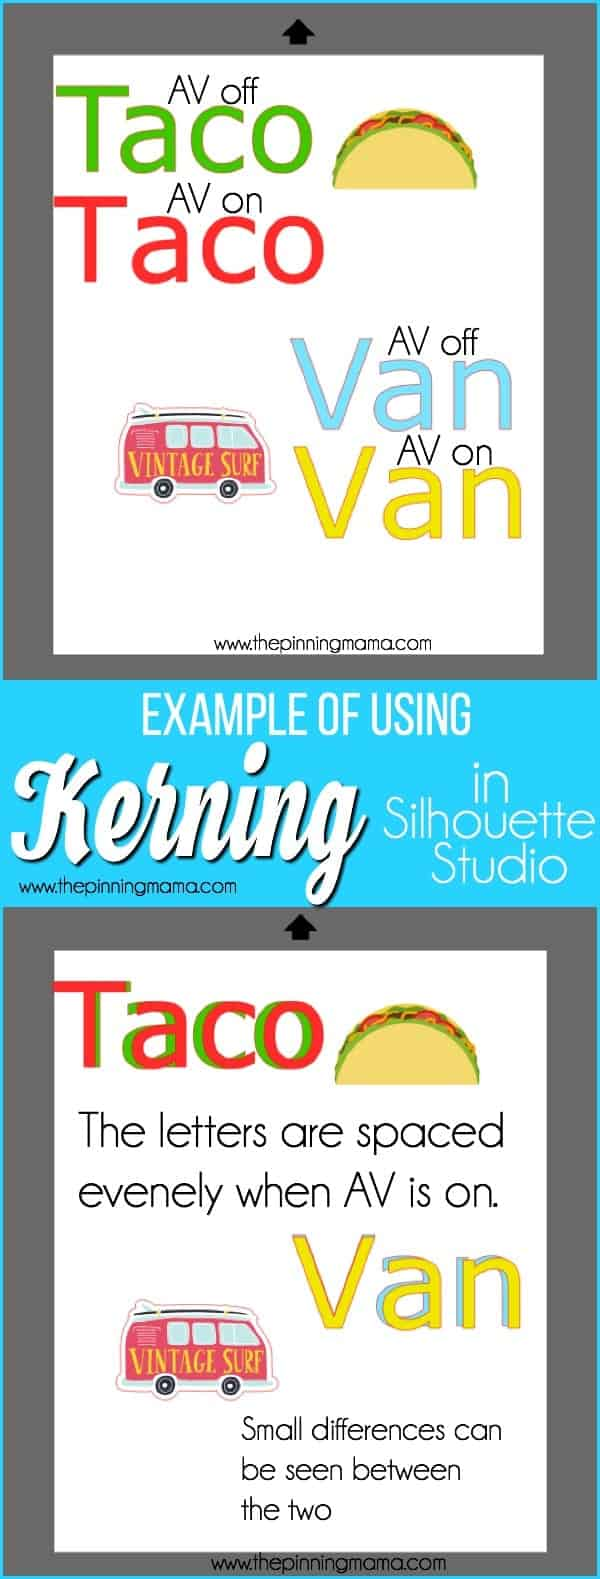 Examples of using Kerning in Silhouette Studio.